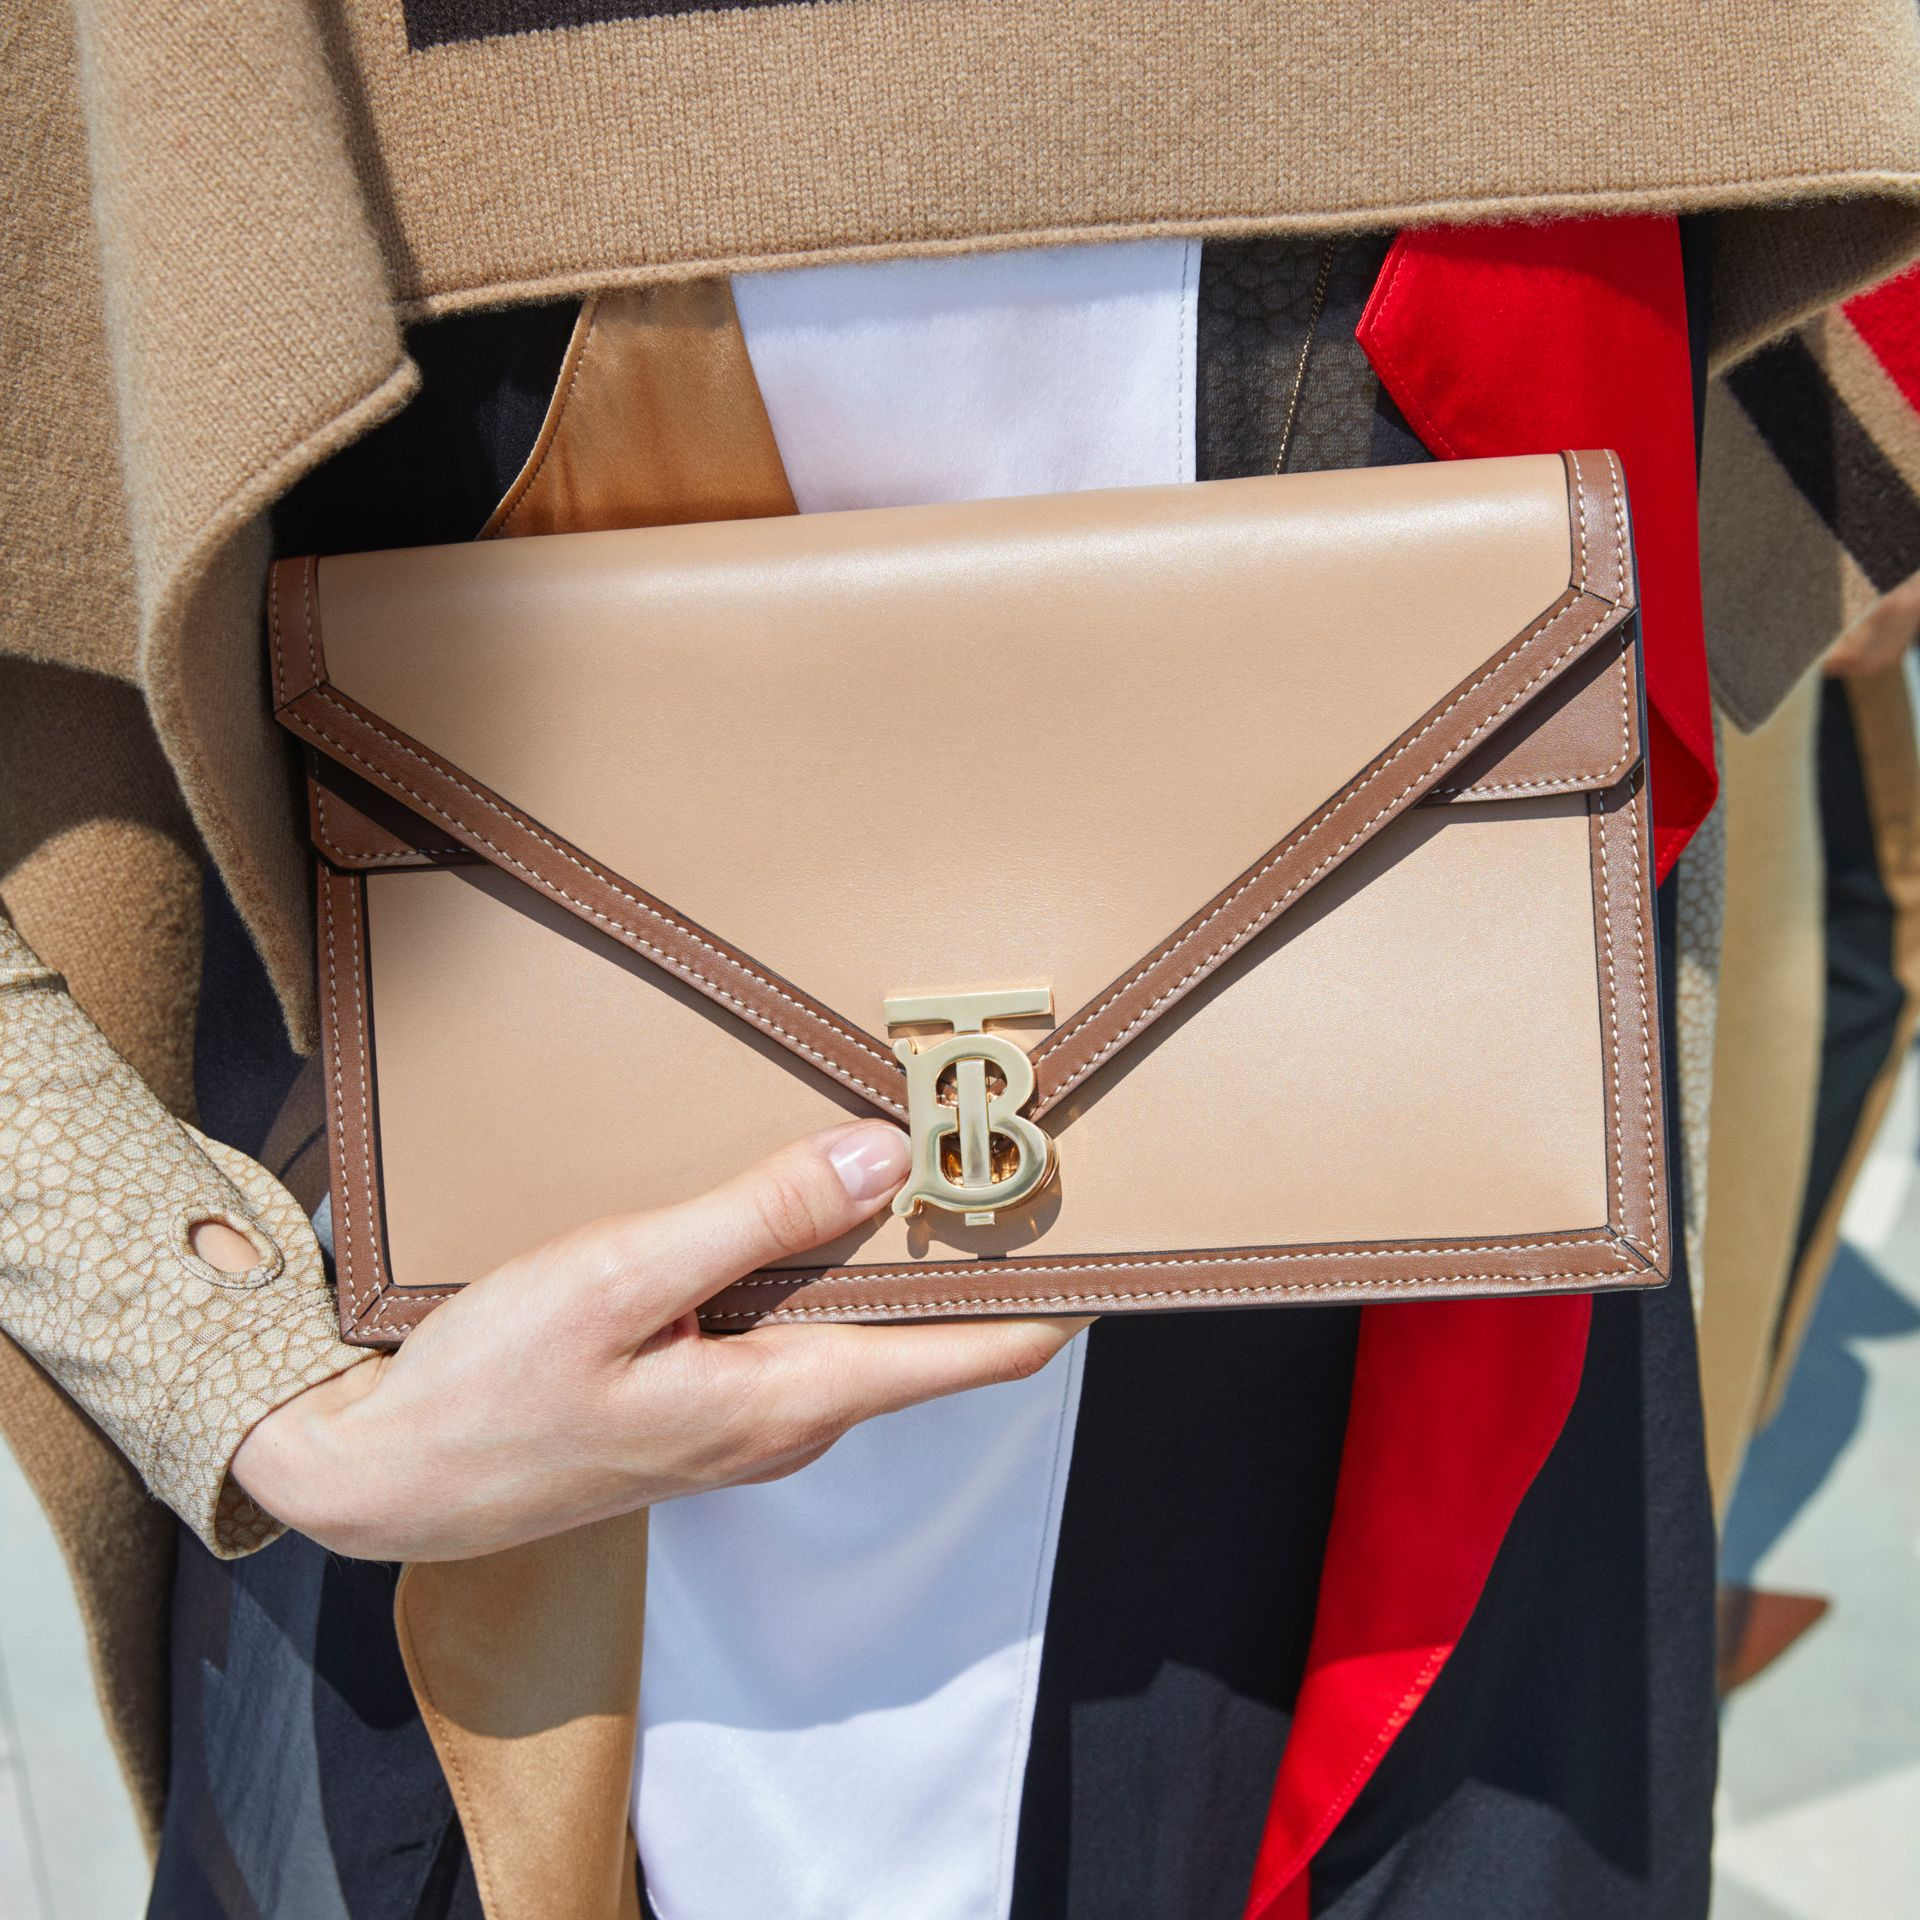 Small Two-tone Leather TB Envelope Clutch in Malt Brown - Women | Burberry - gallery image 1